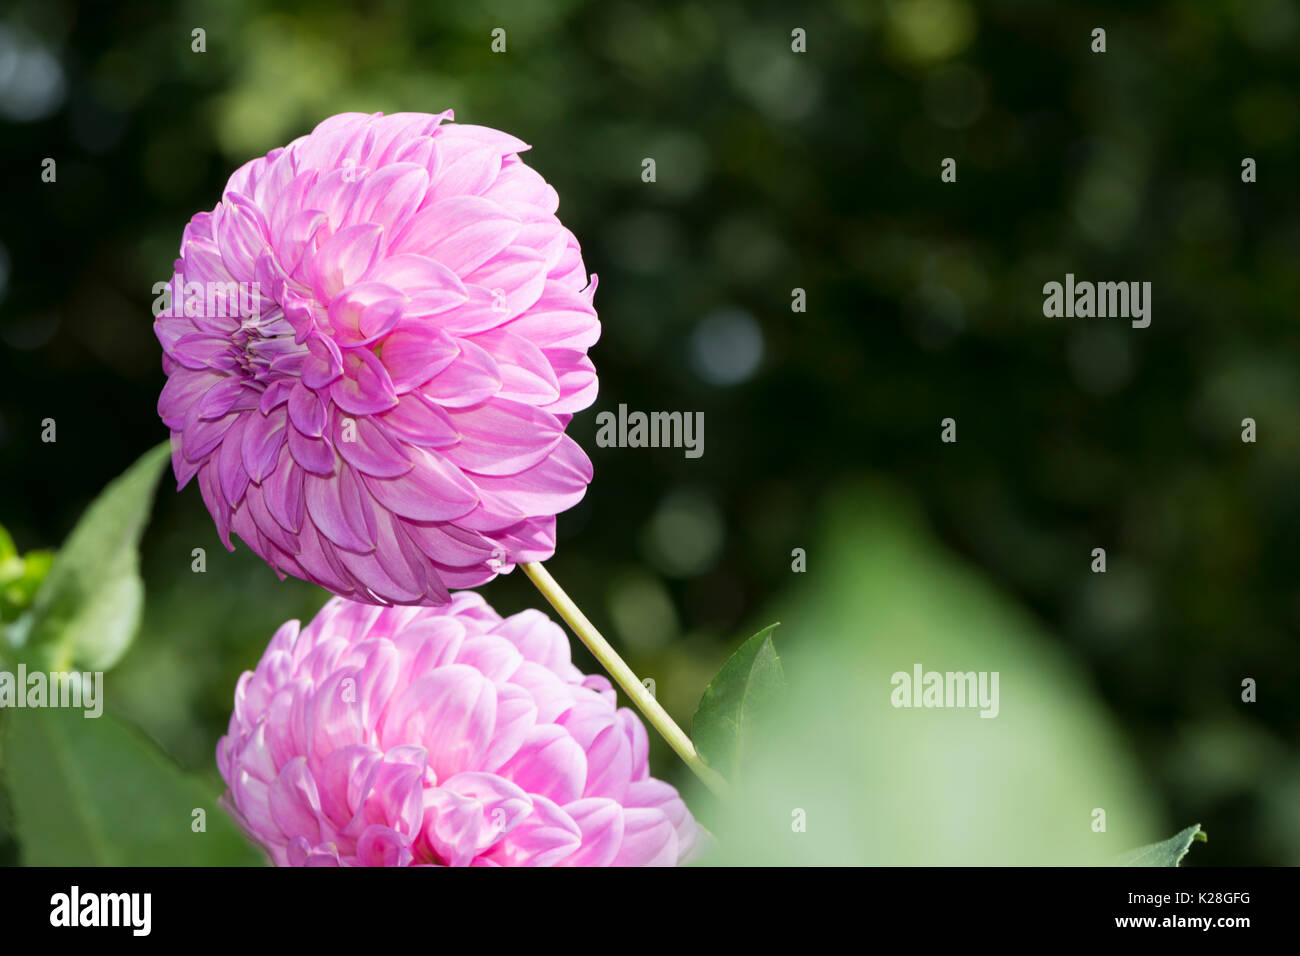 Two dahlia flowers stock photos two dahlia flowers stock images two light pink bracken sequel dahlia flowers growing in a natural garden setting landscape orientation izmirmasajfo